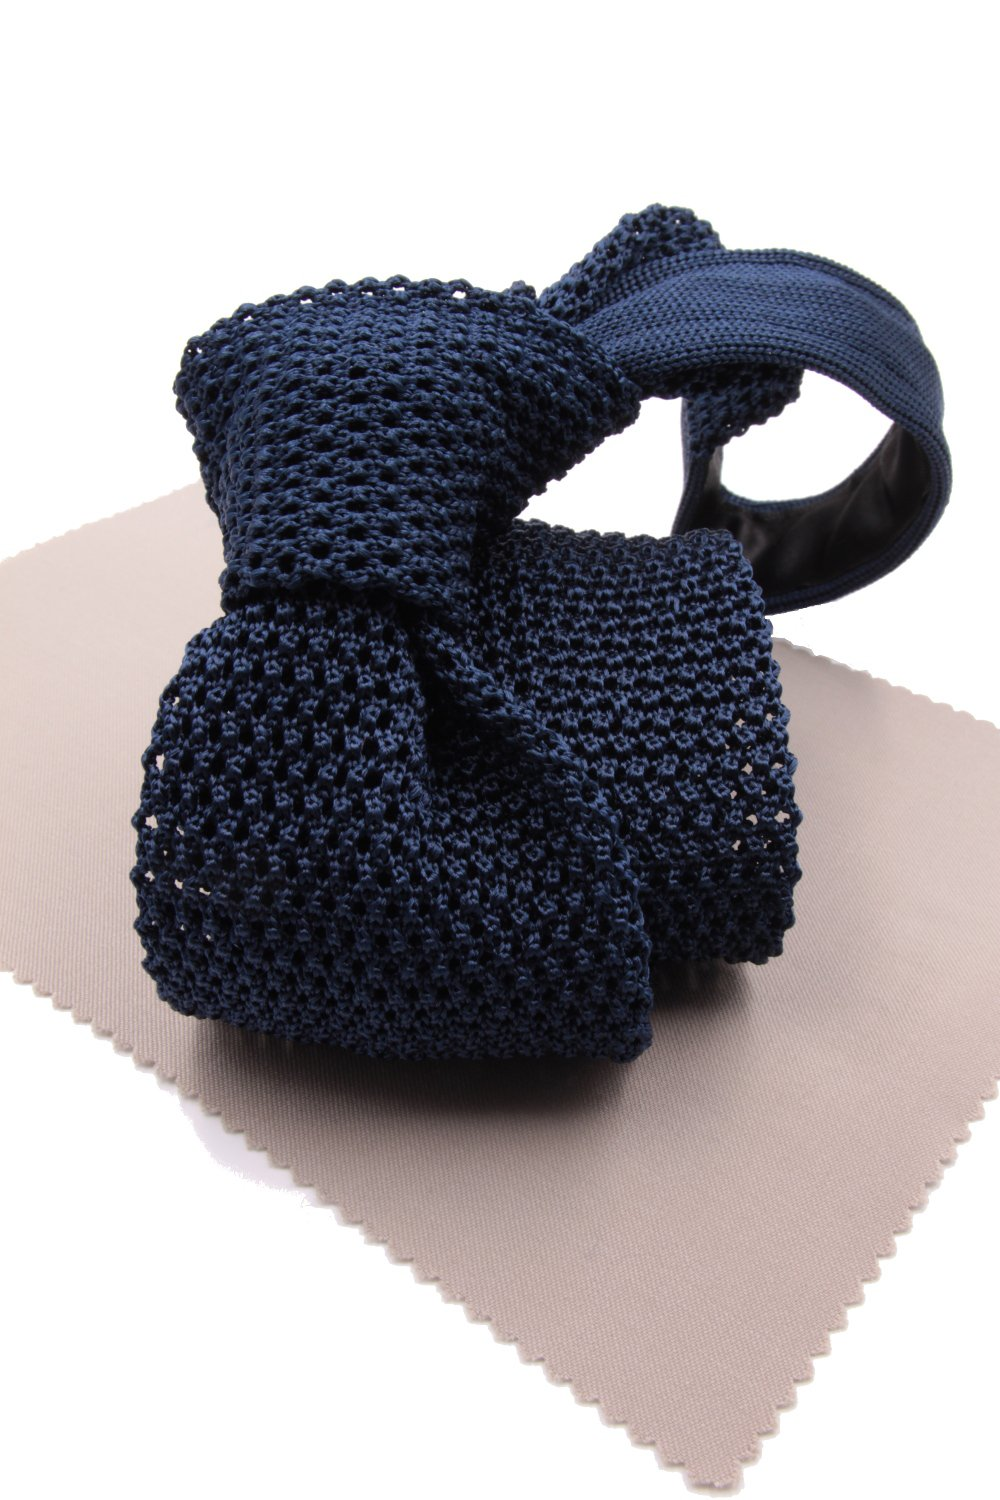 Royal blue knitted tie